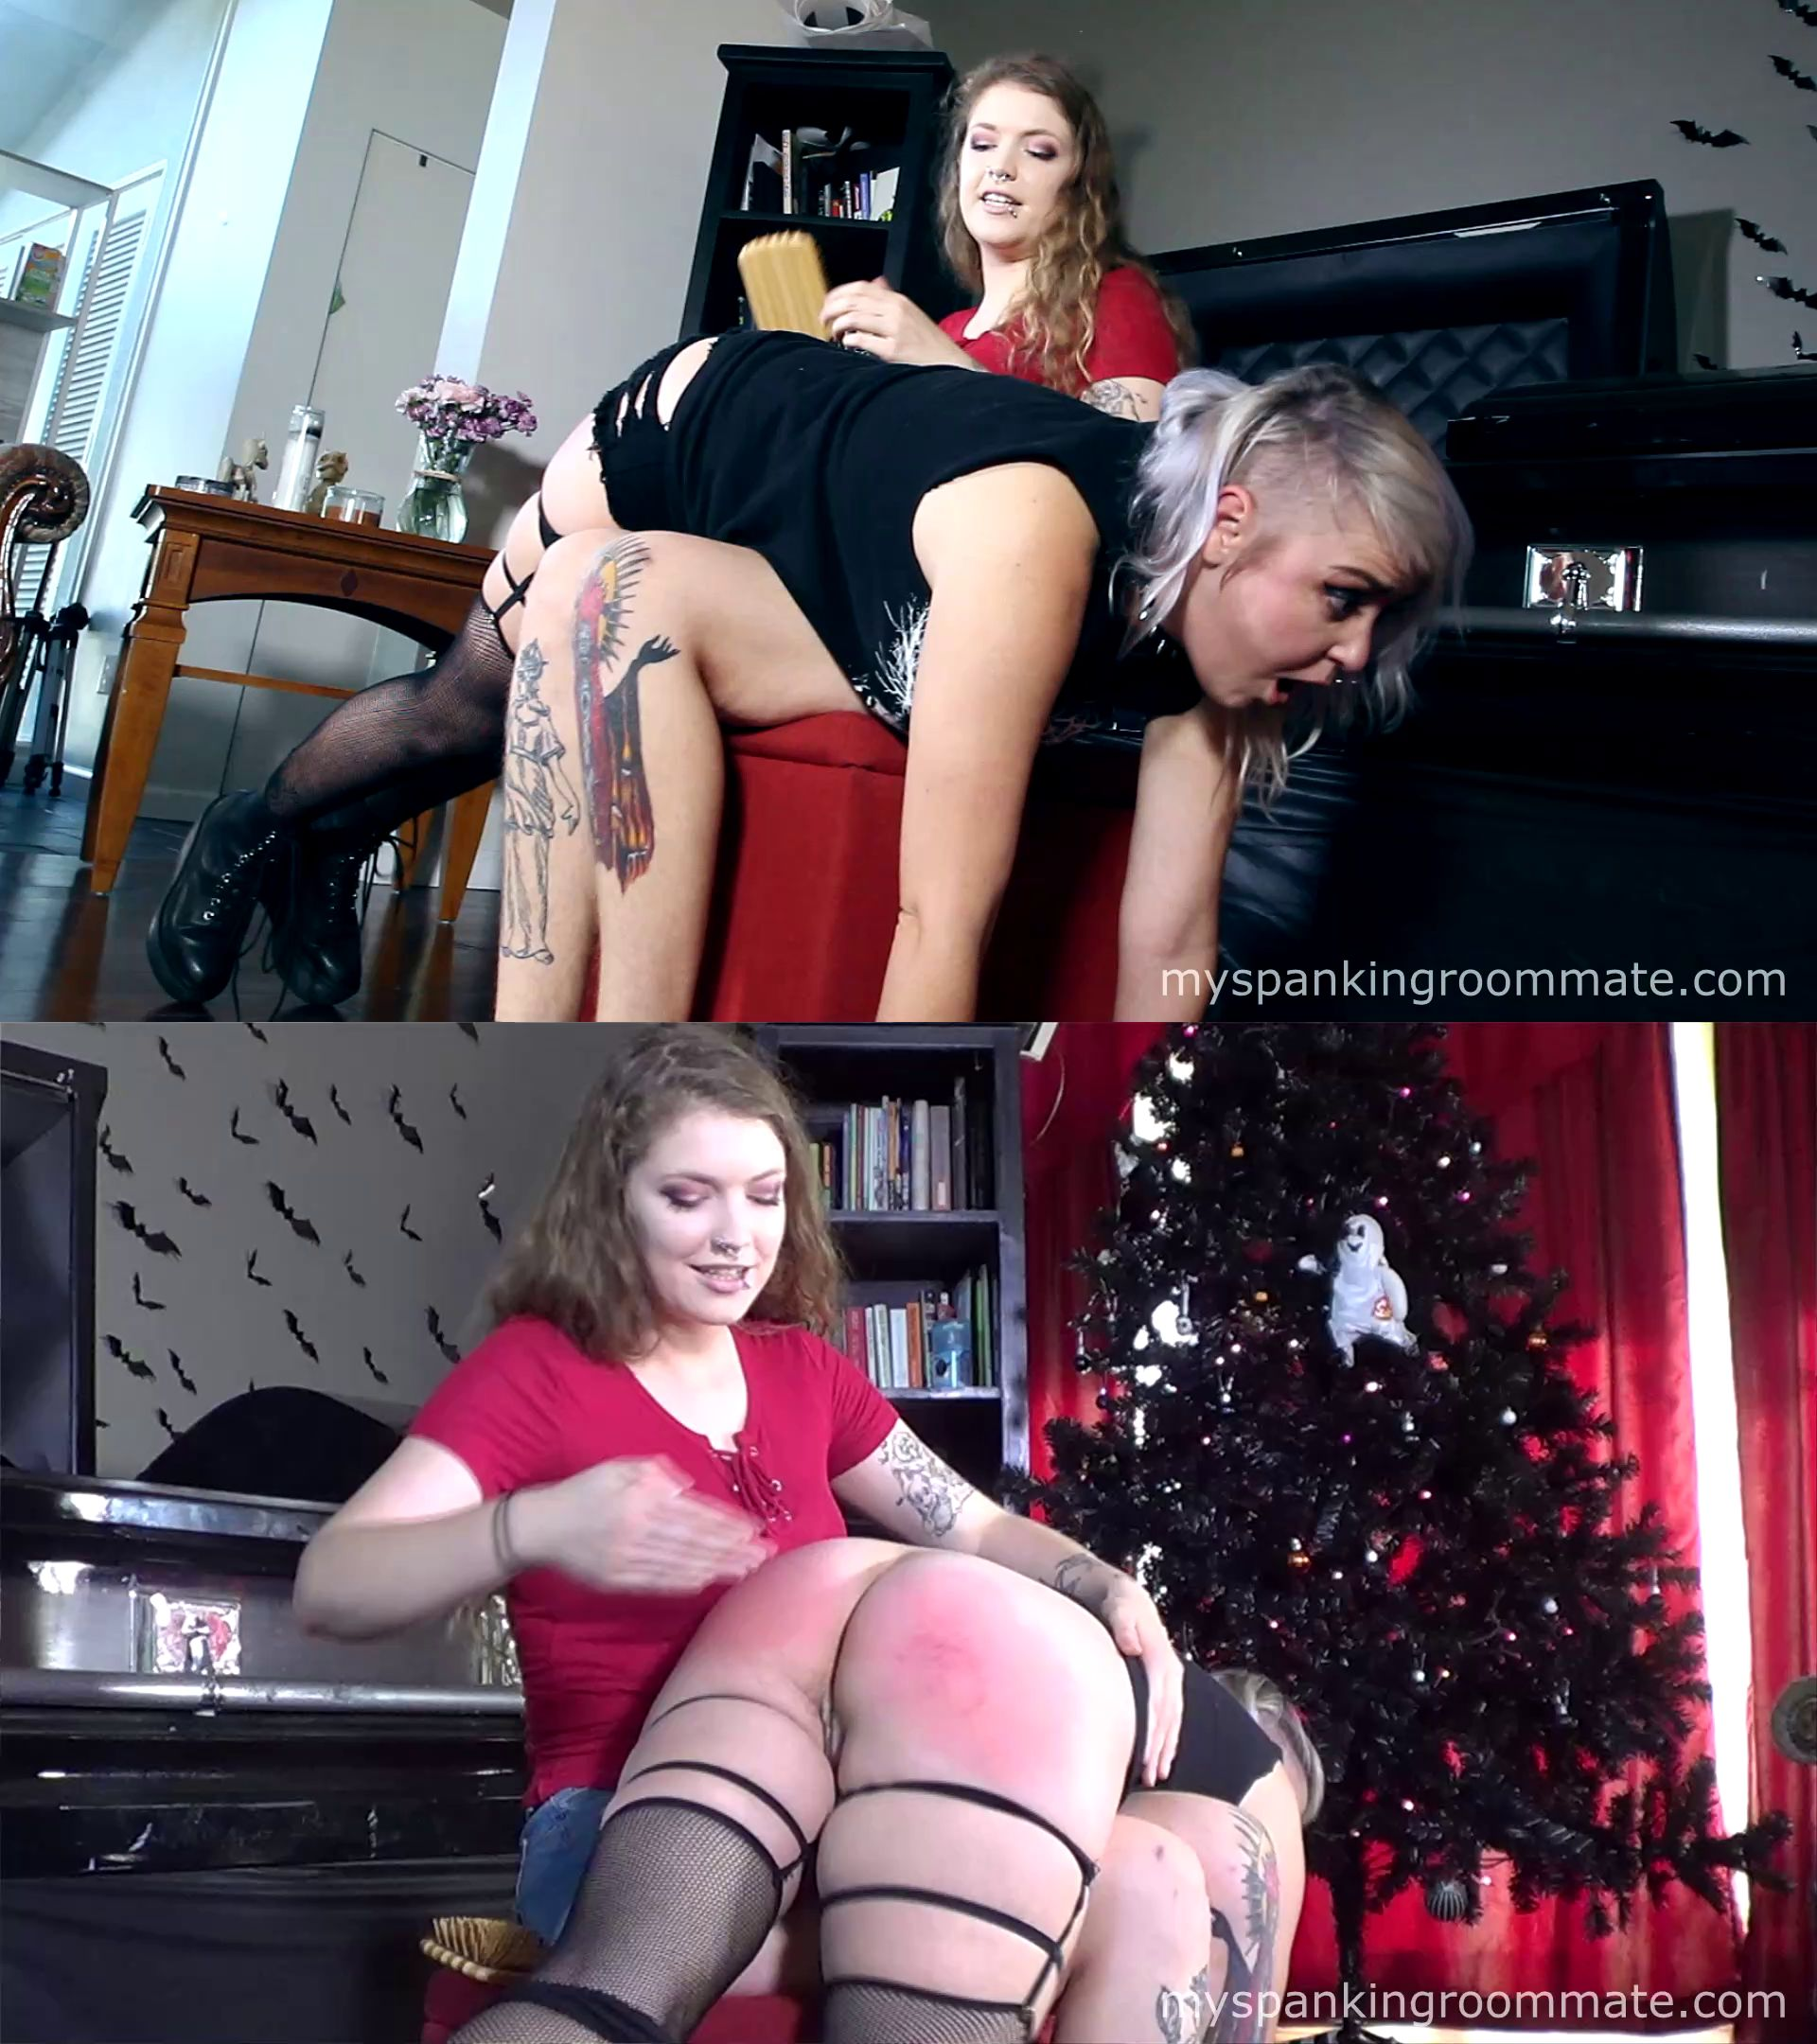 myspankingroommate – MP4/HD – Apricot Pitts, Wolfie – Apricot Spanks Roommate Over Decorations